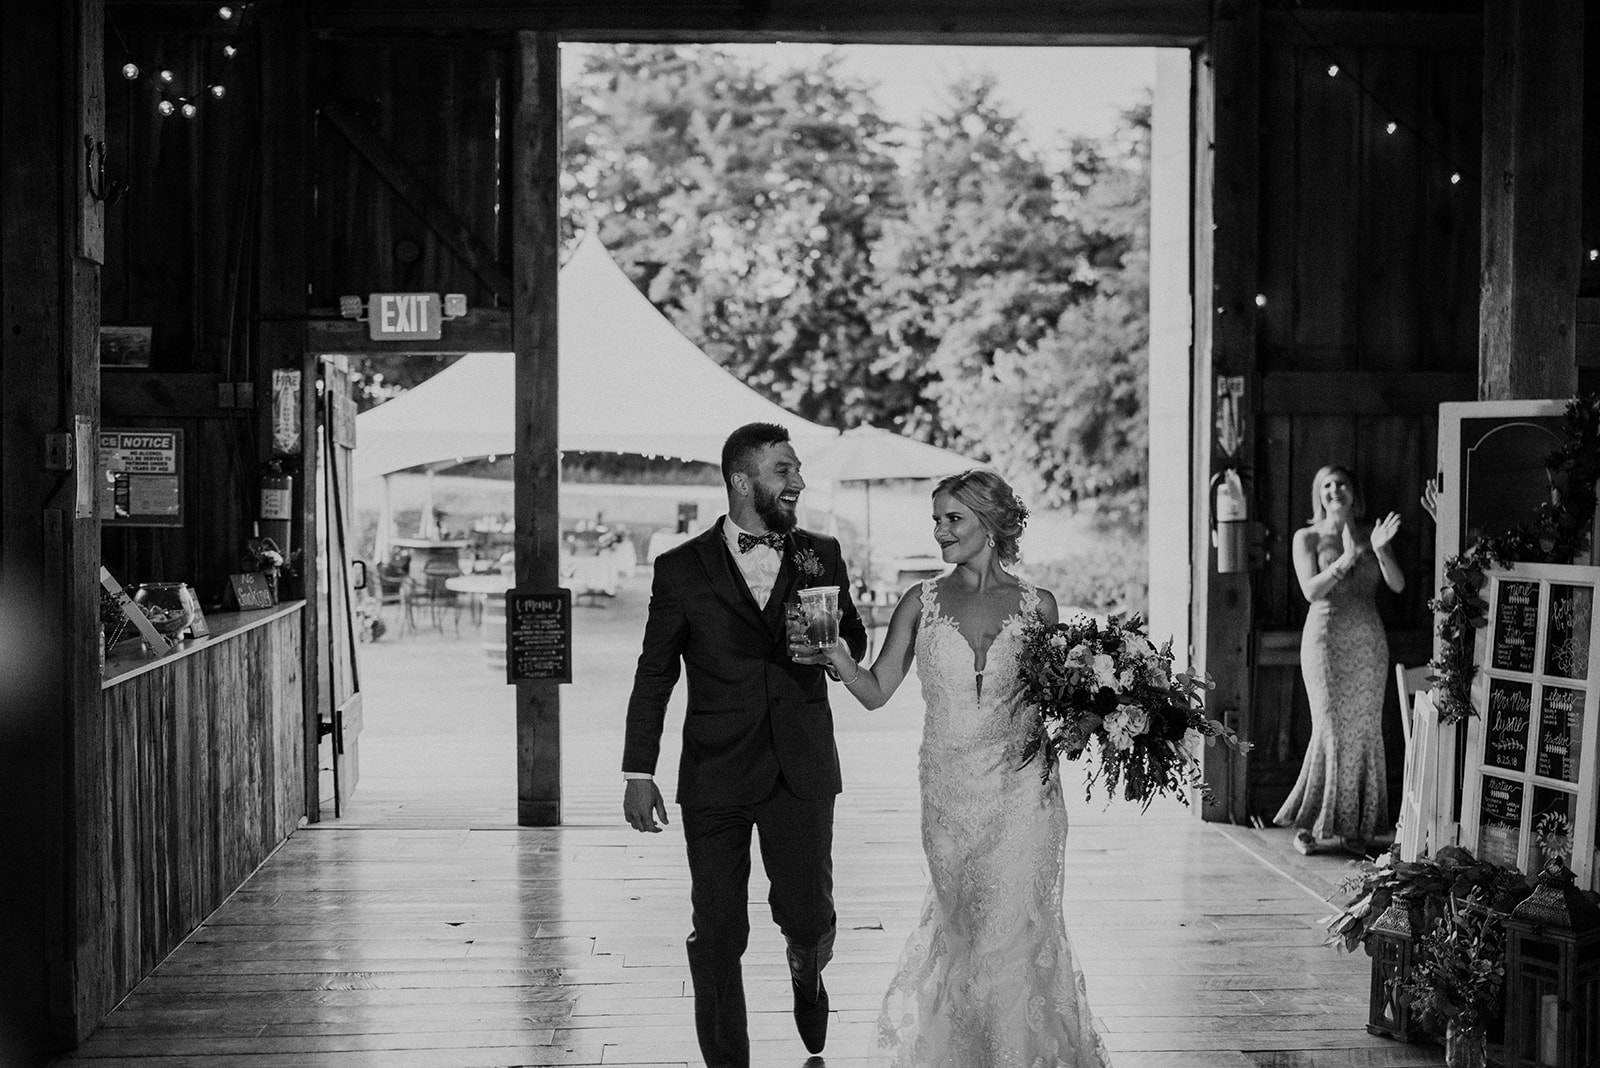 overthevineswisconsinwedding_1158.jpg